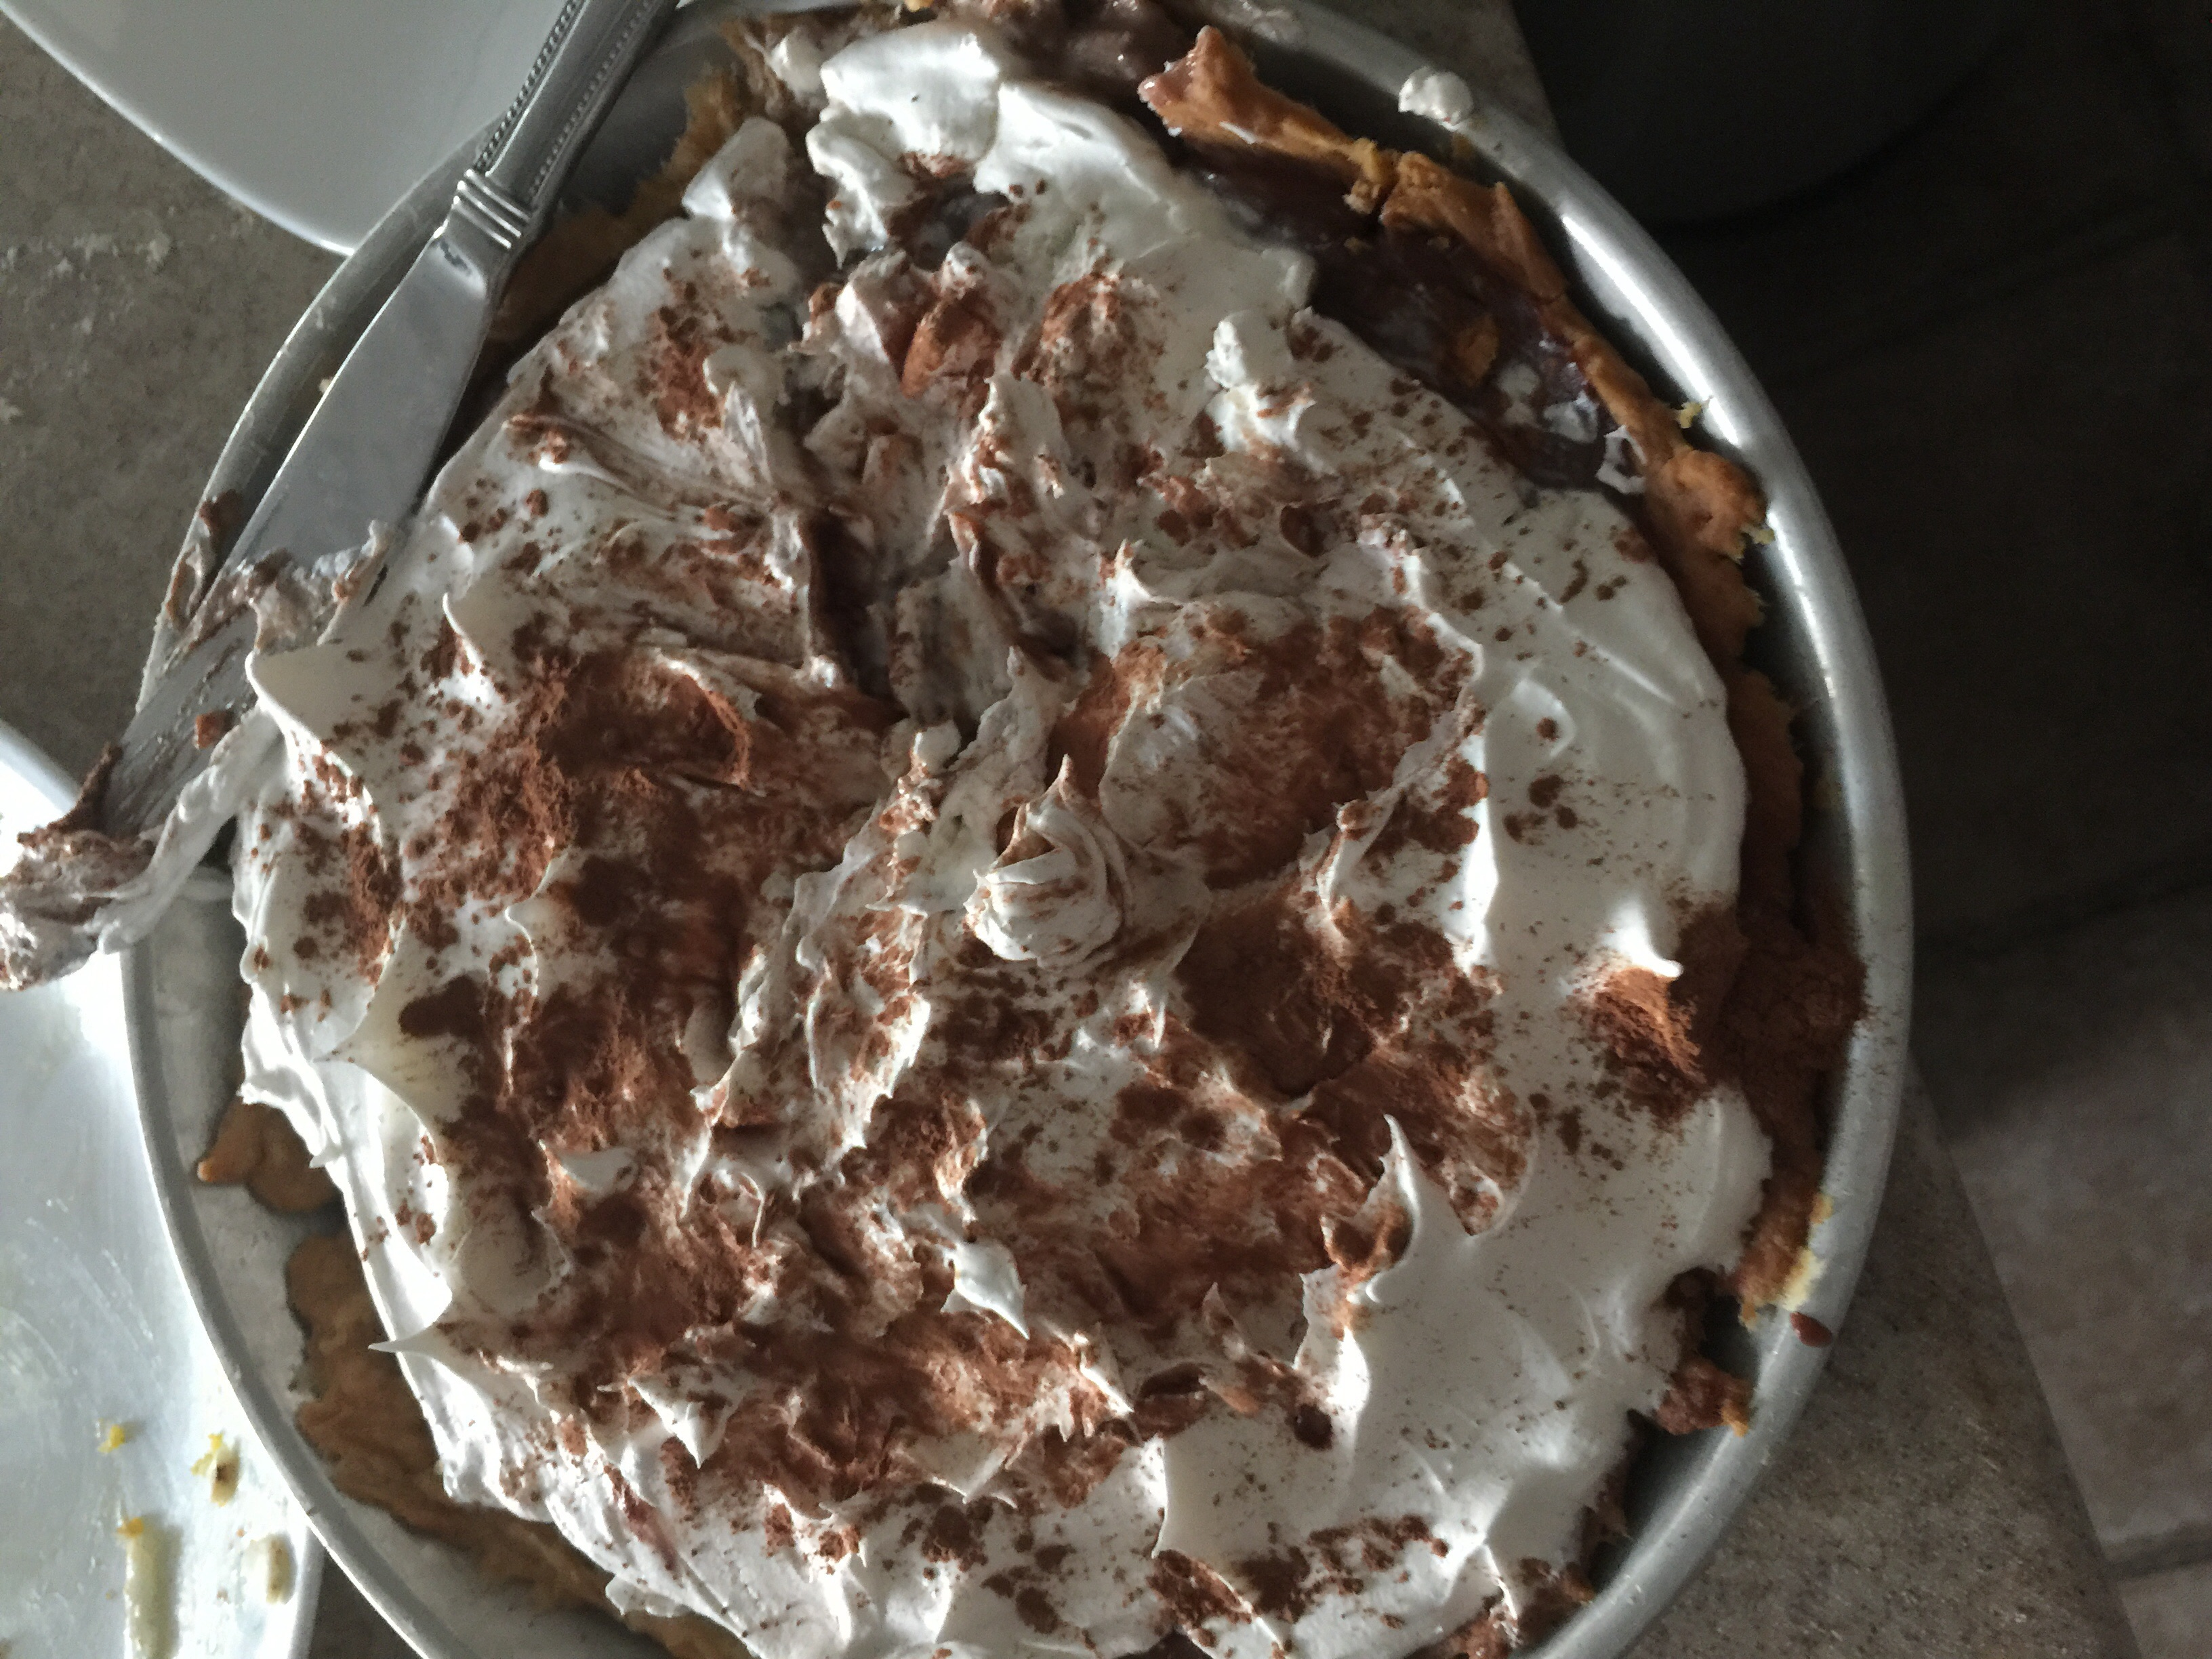 My Grandmas Chocolate Pies Recipe - Food.com